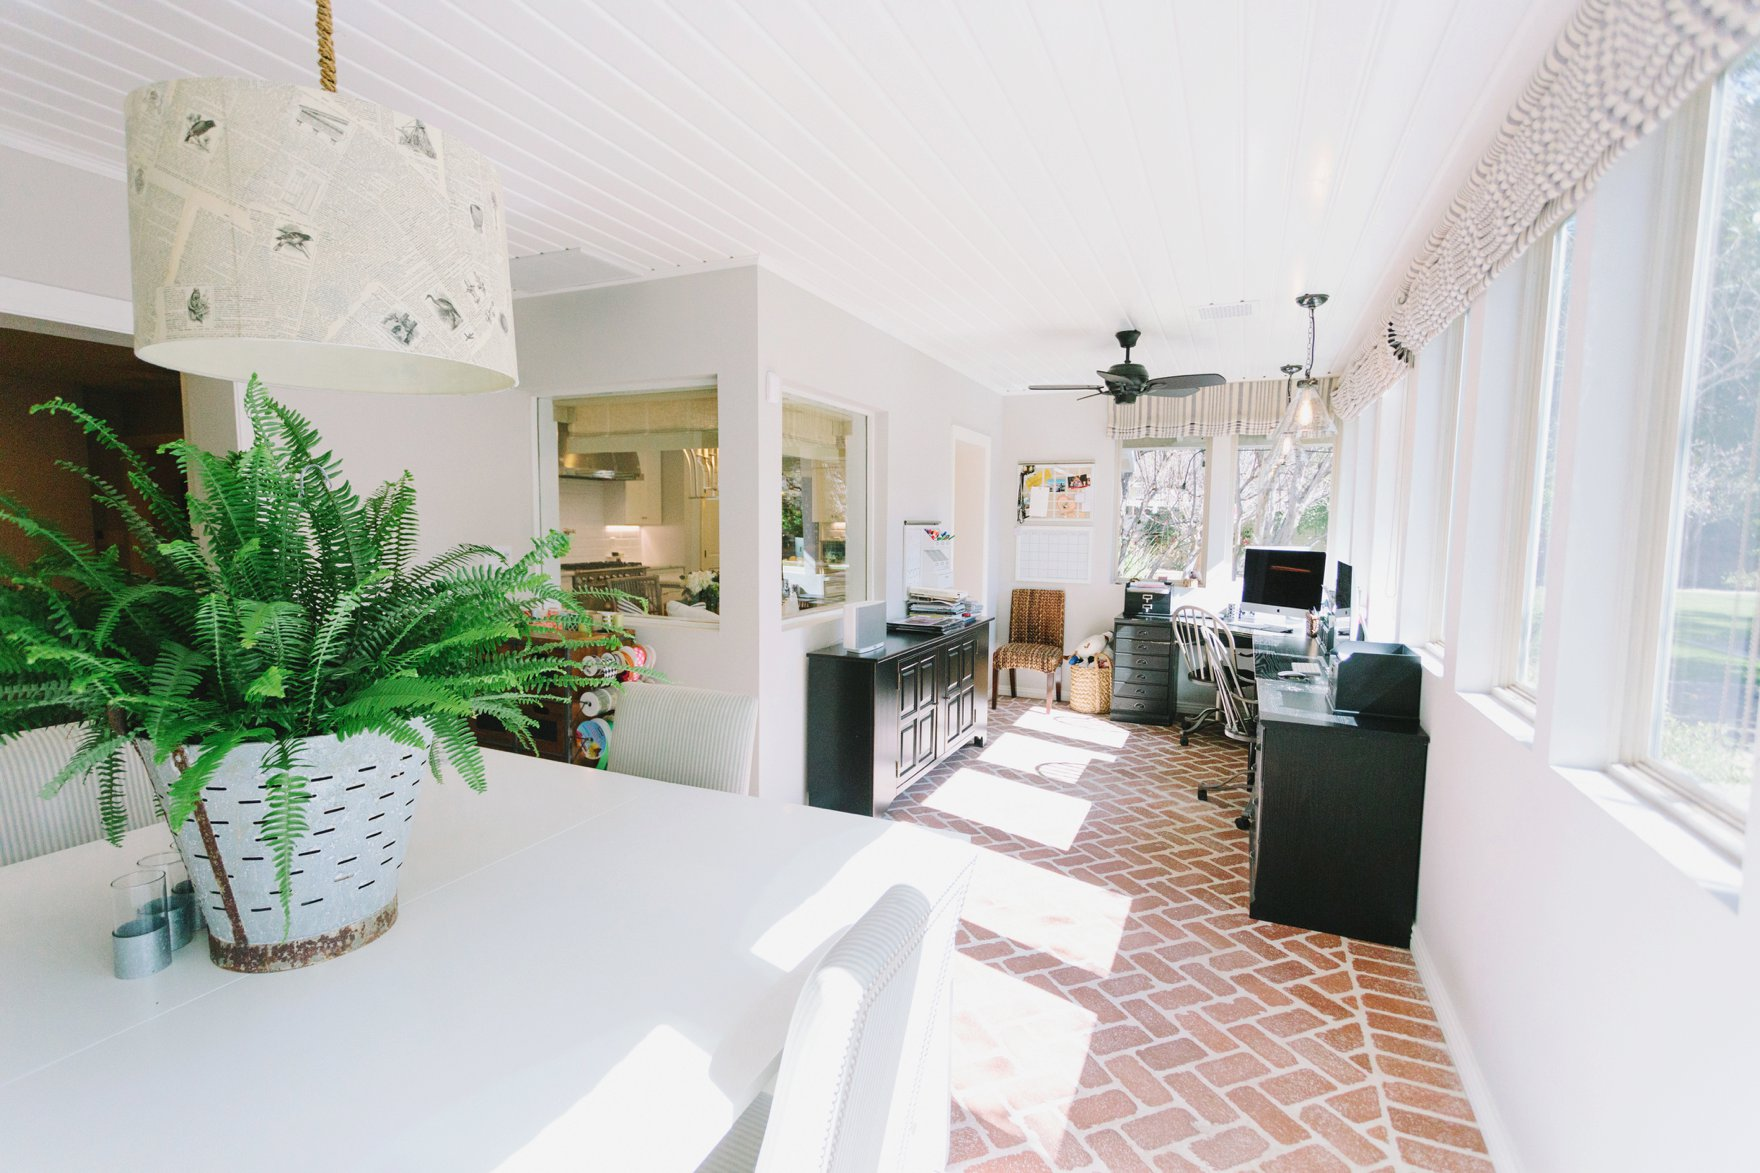 Central Phoenix arizona house tour To Have to Host Lory Parson living area spaces kid work area sunroom